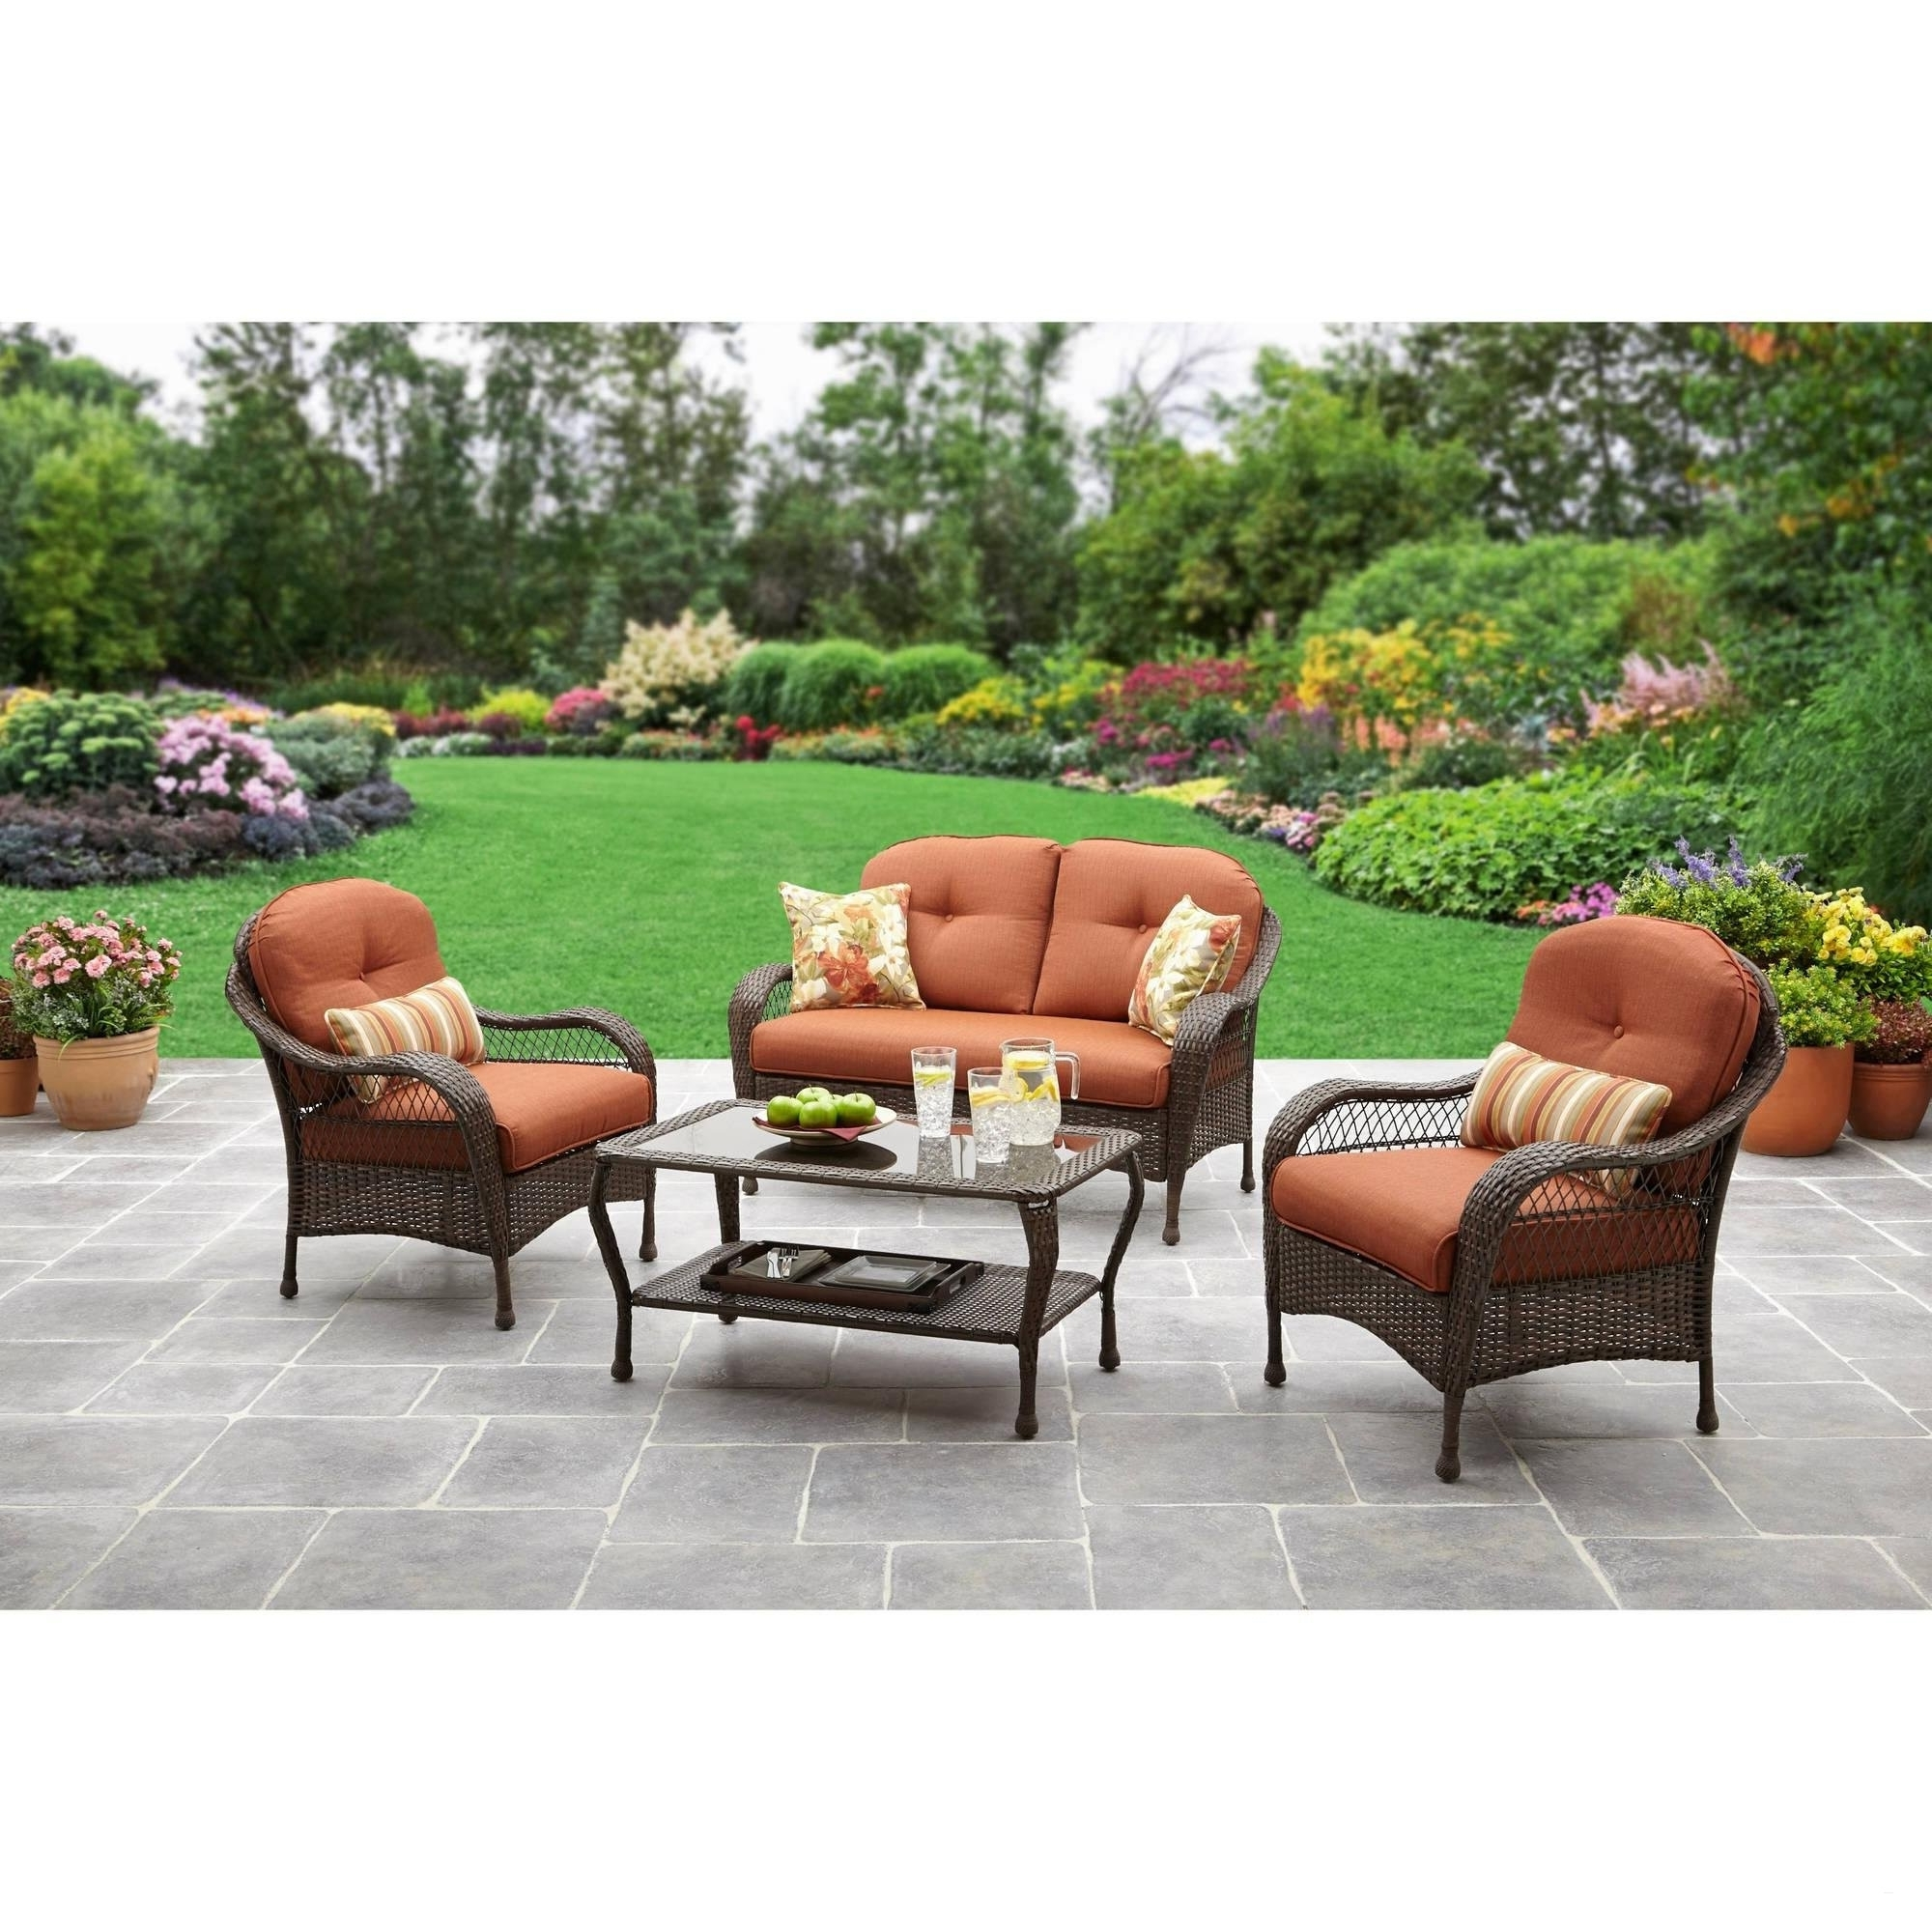 Amazon Patio Furniture Conversation Sets Within Current Home Depot Patio Furniture Amazon Outdoor Furniture Patio Furniture (View 2 of 20)